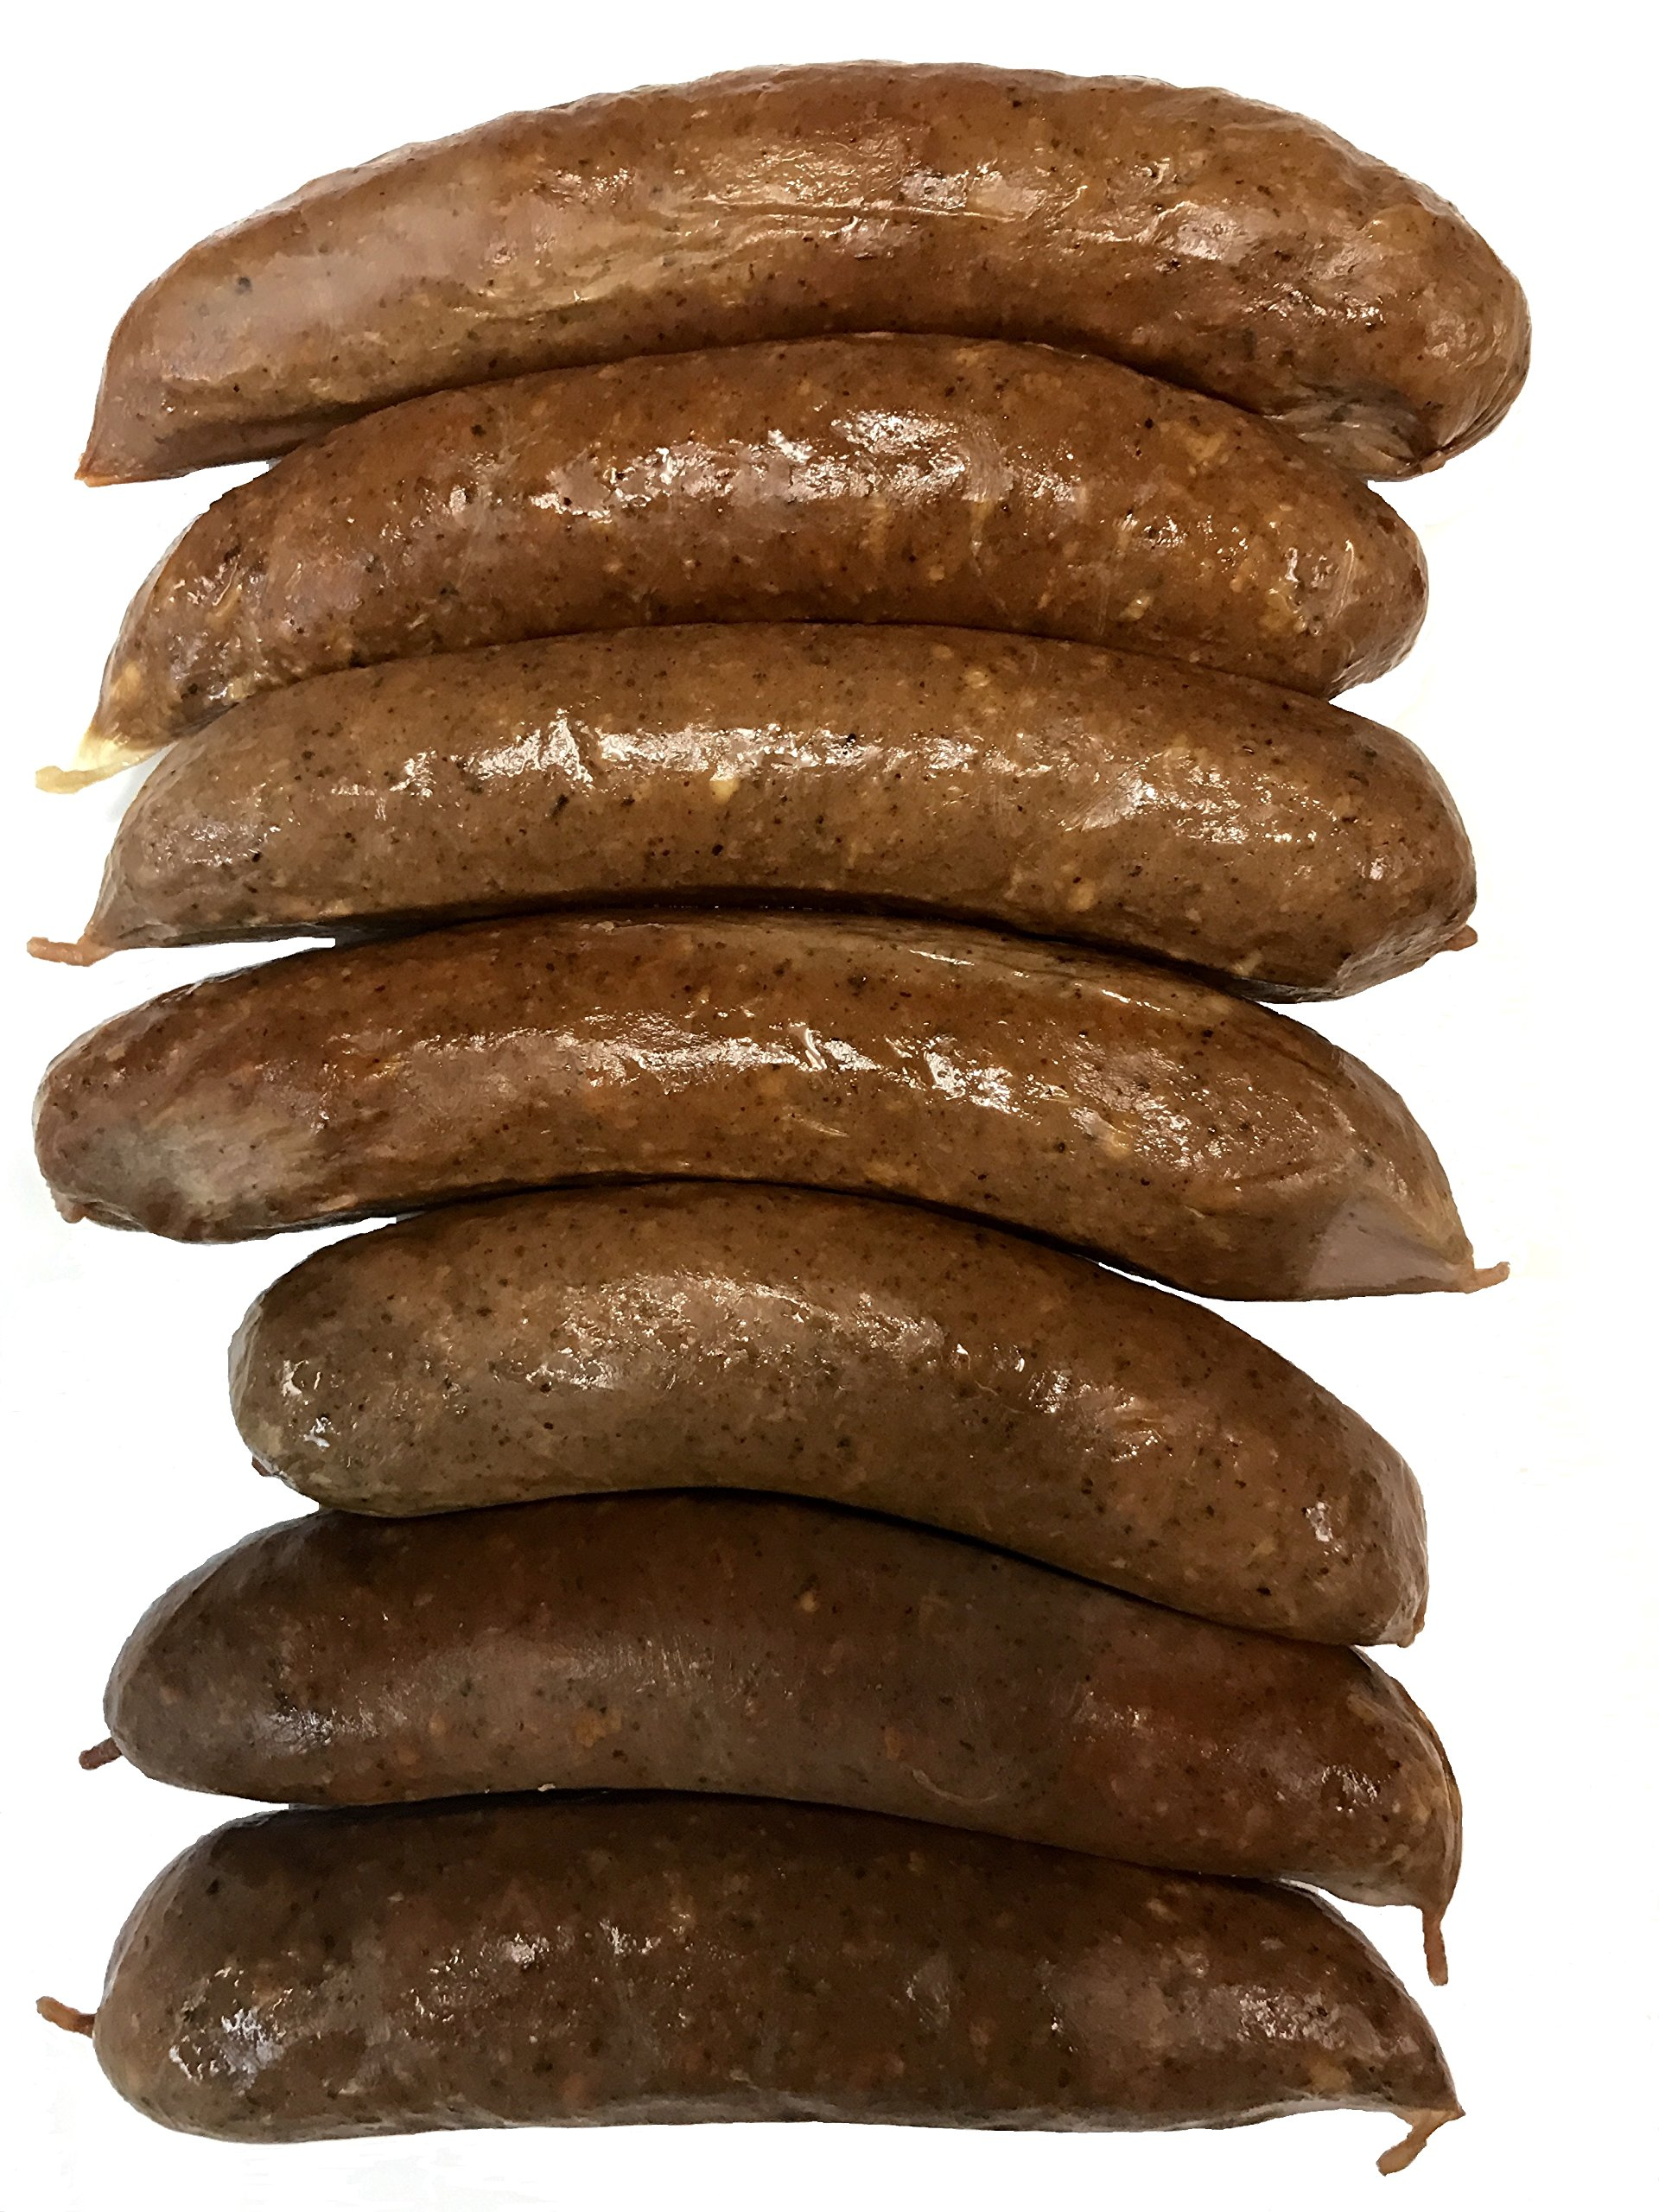 Wild Boar Gourmet Smoked Sausages (Cooked) 8 Qty 4 Oz. Links, 1/2 lbs Package